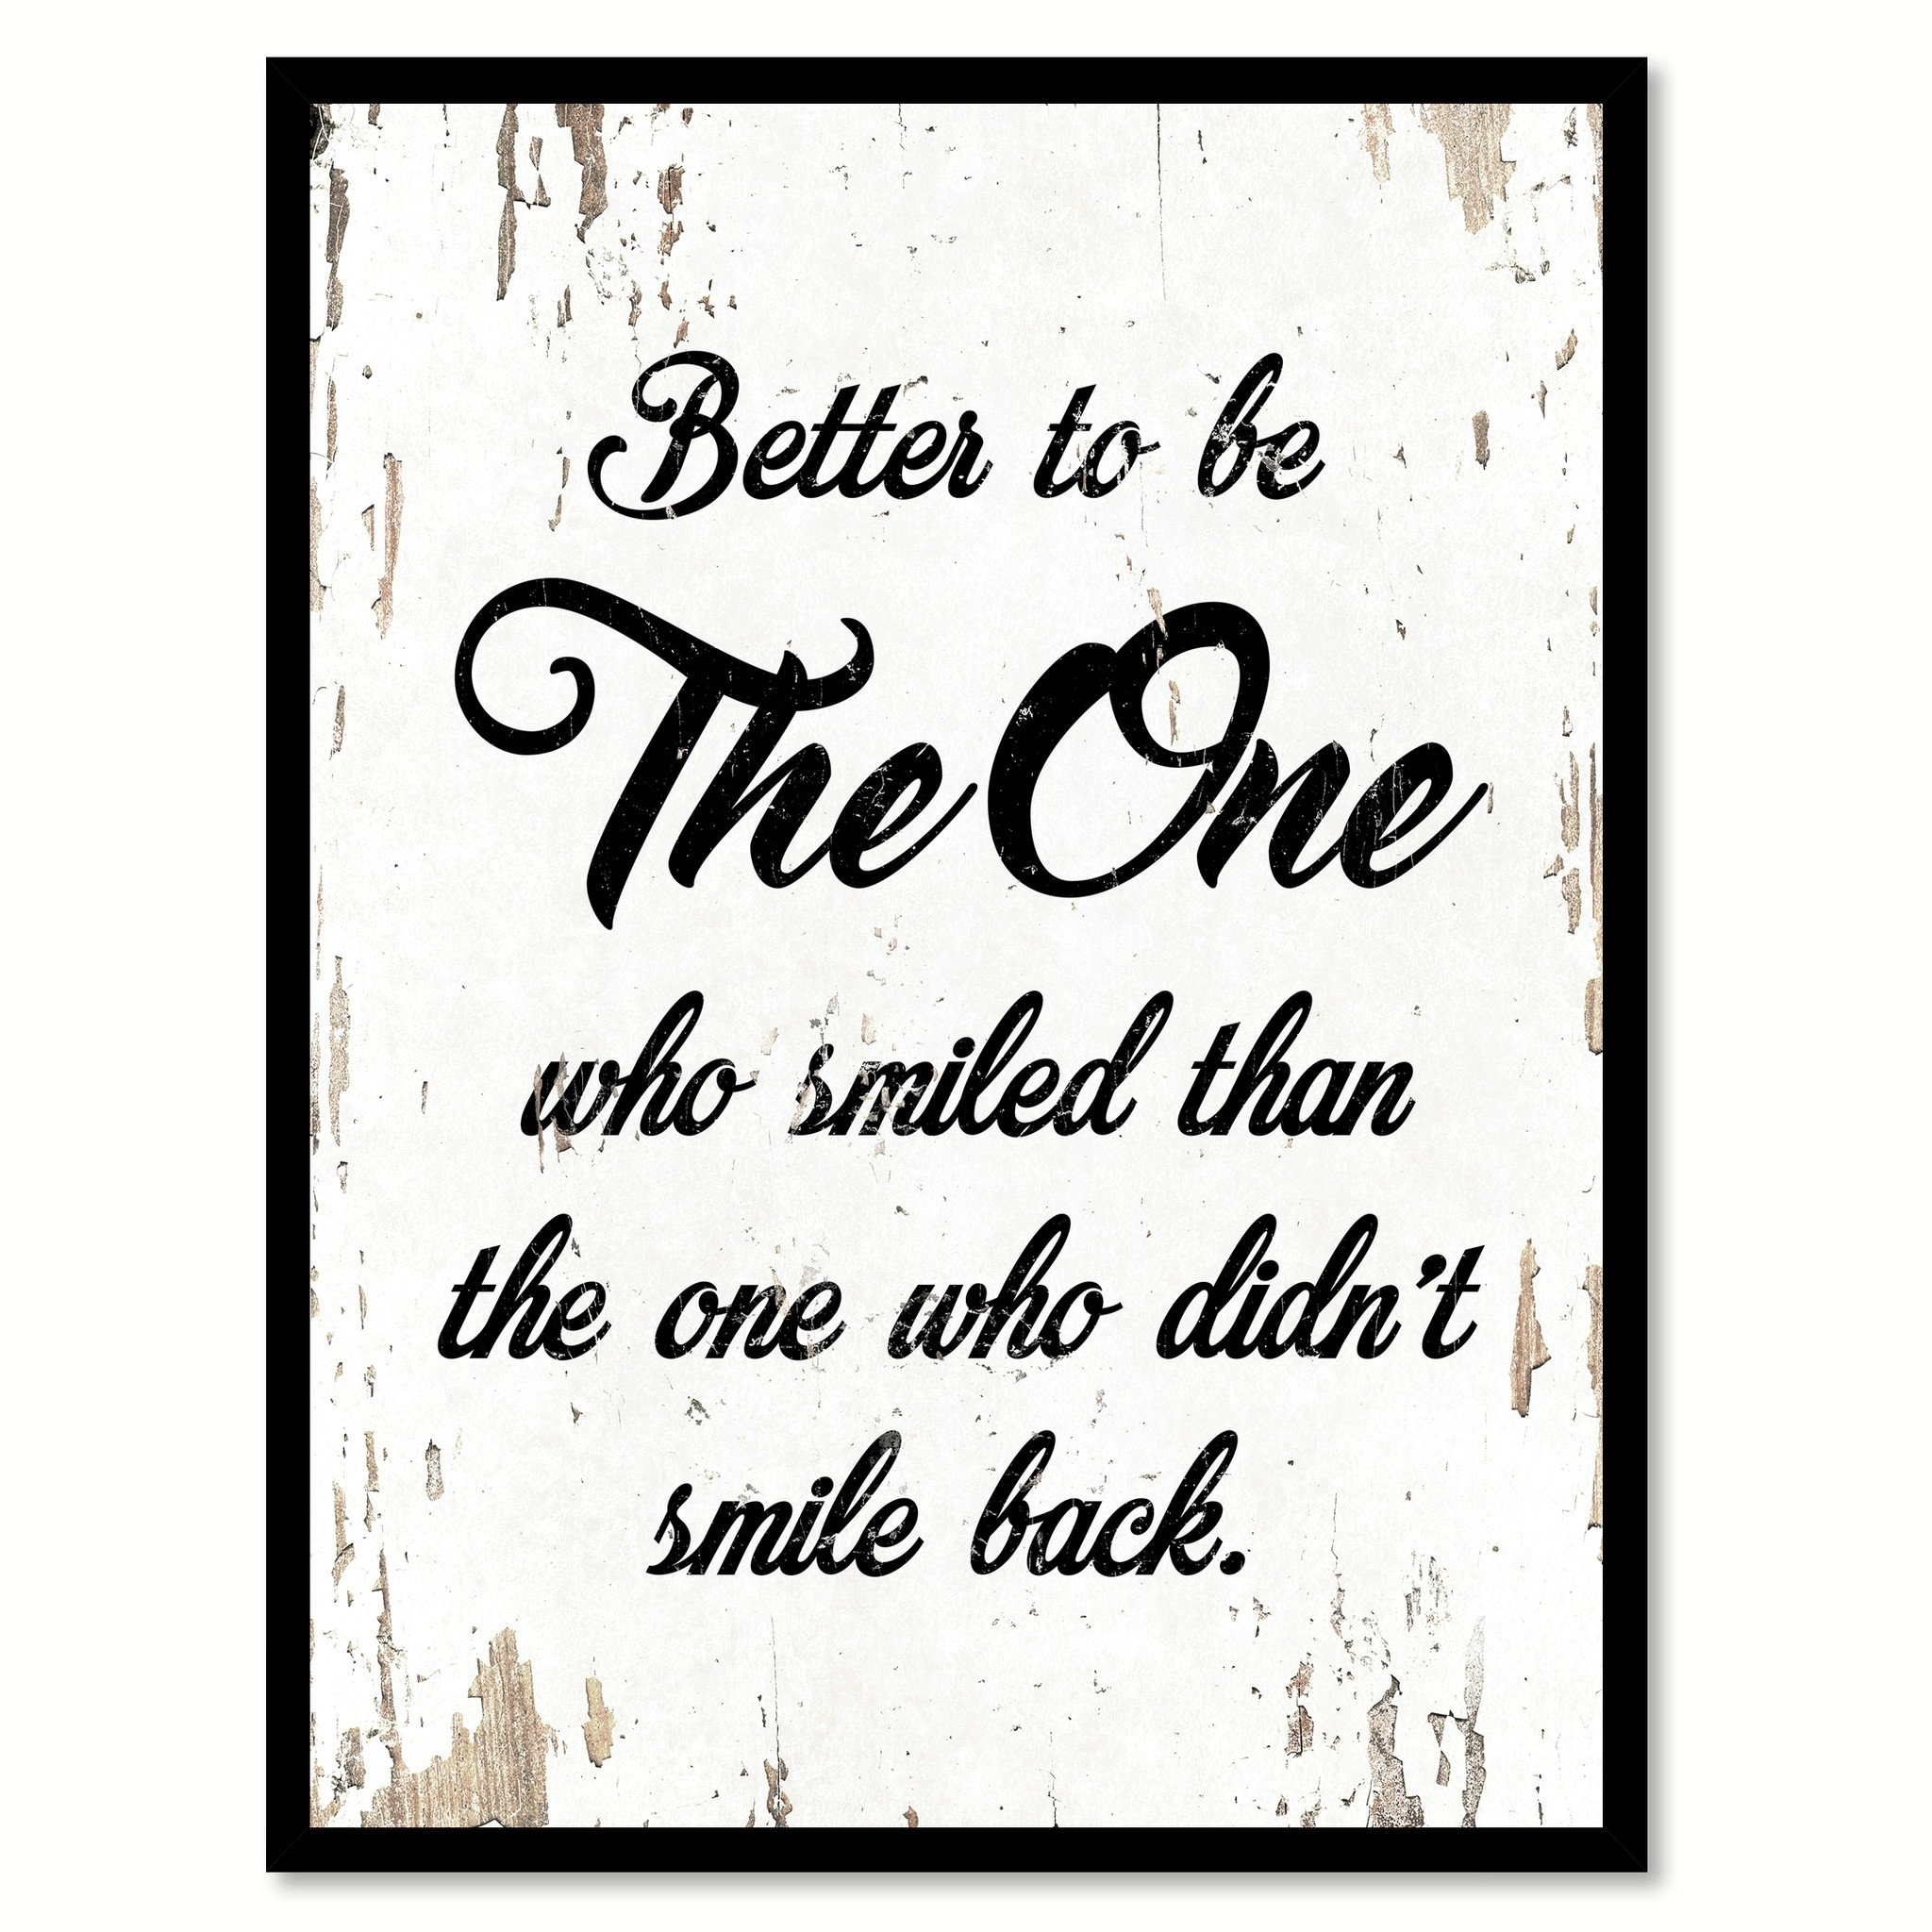 "Better To Be The One Who Smiled Than The One Quote Saying Canvas Print with Picture Frame Home Decor Wall Art Gifts 111702 - 7""x9\"""